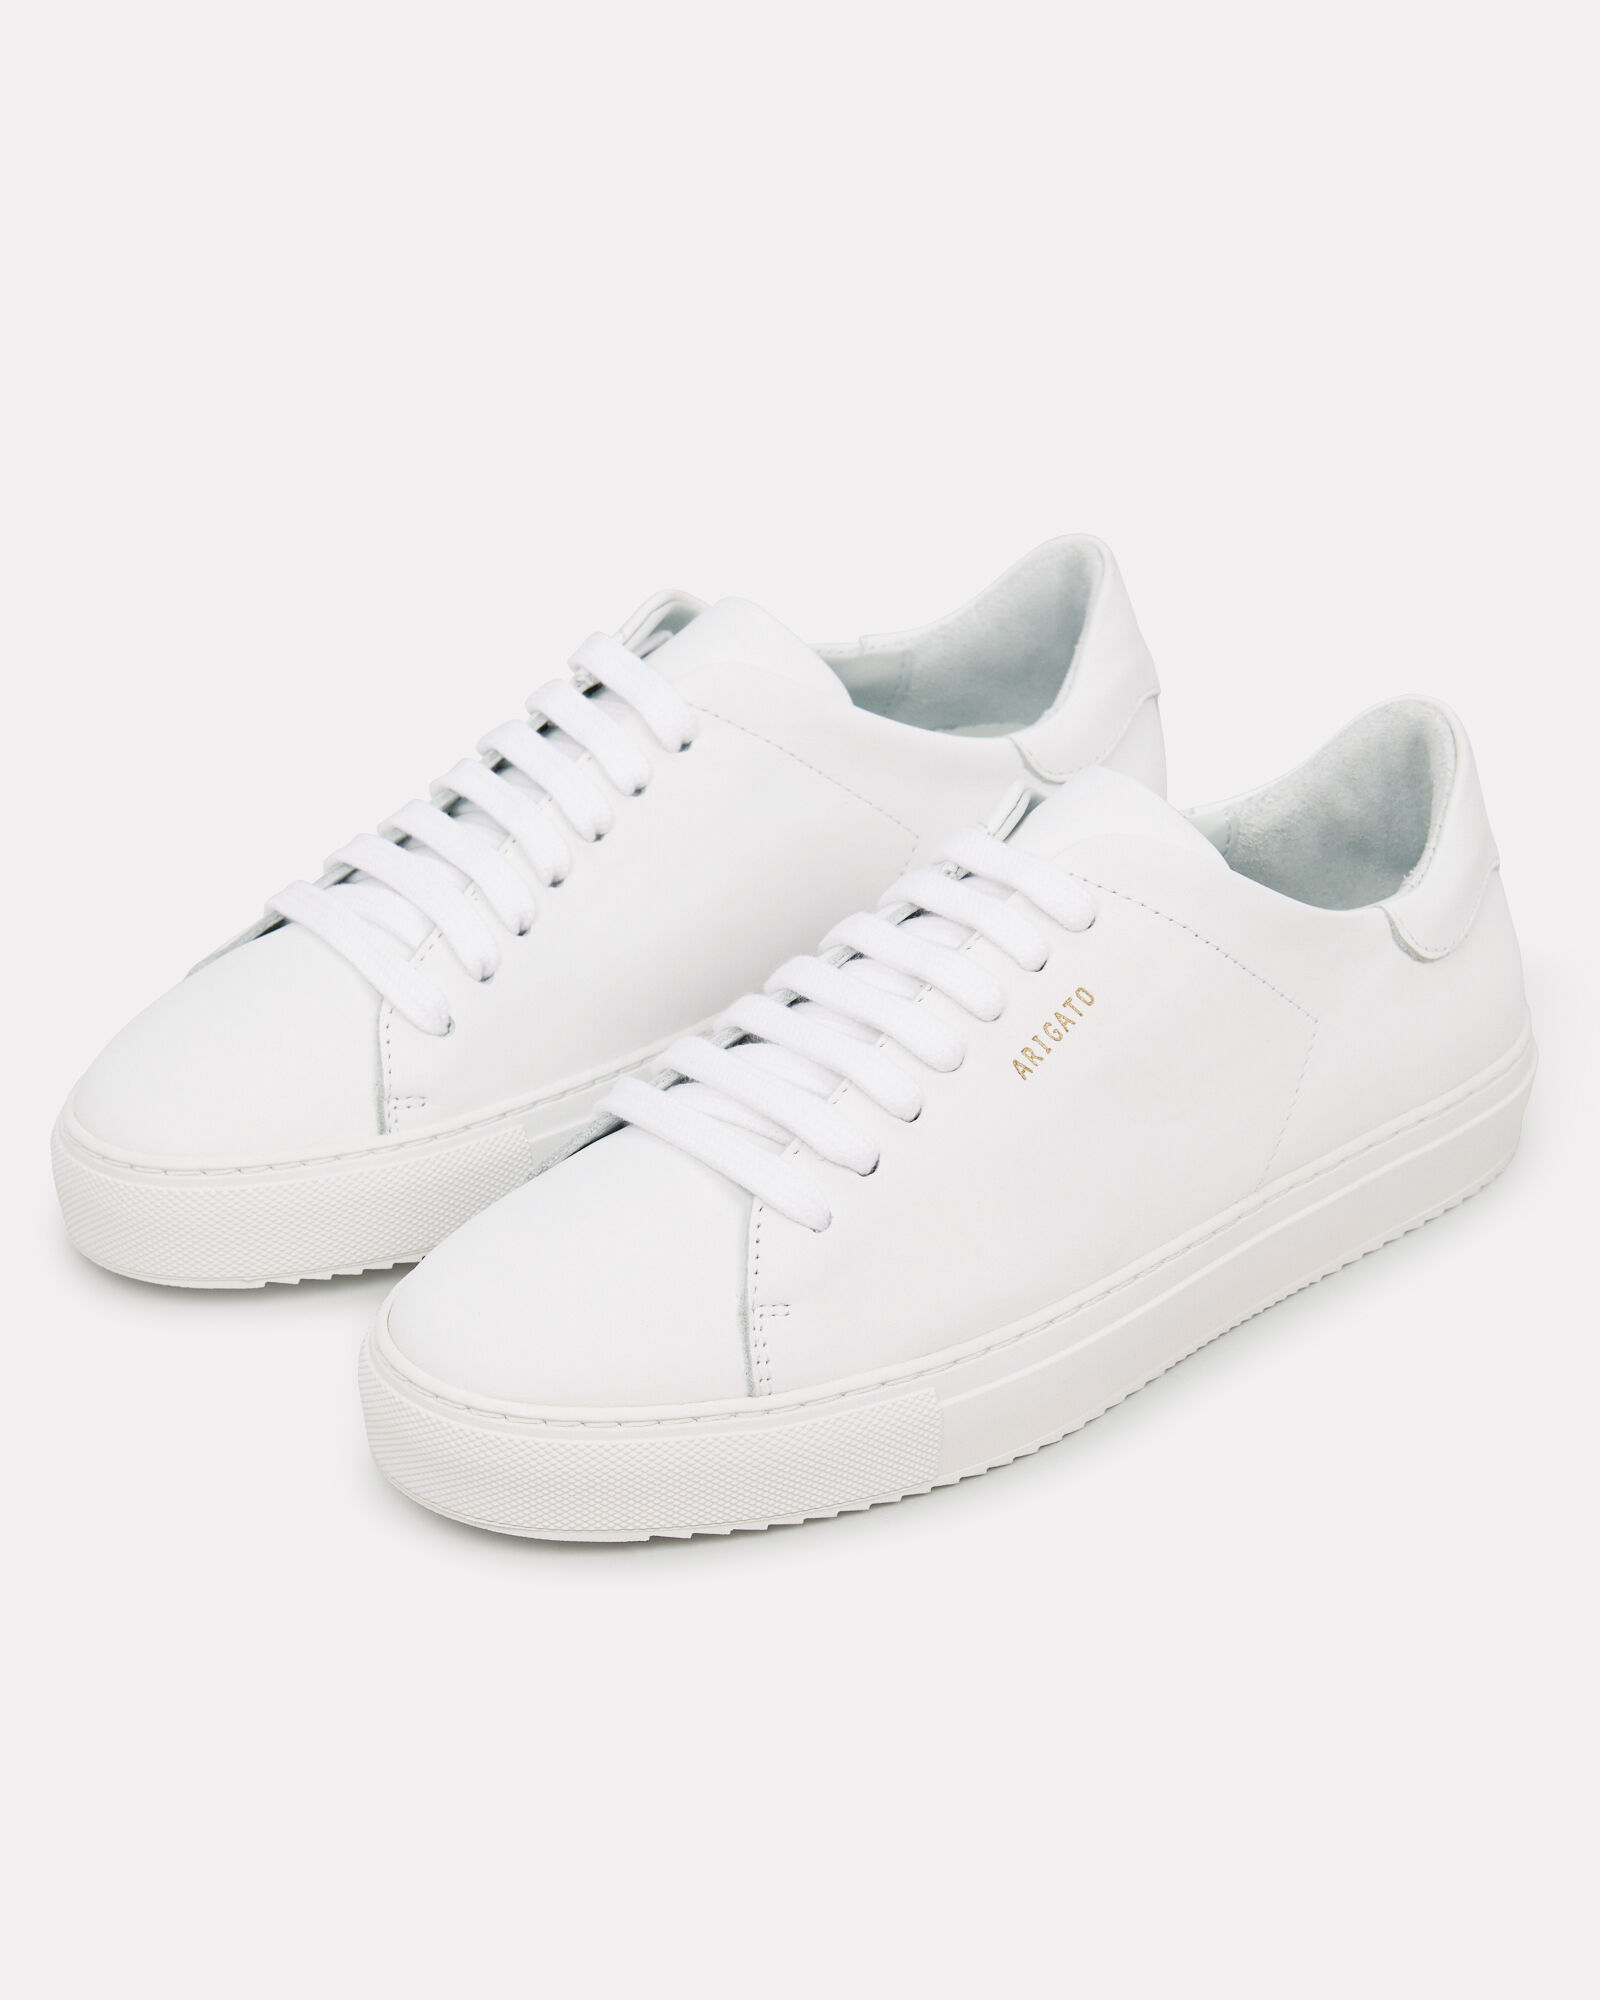 Clean 90 Leather Sneakers, WHITE, hi-res